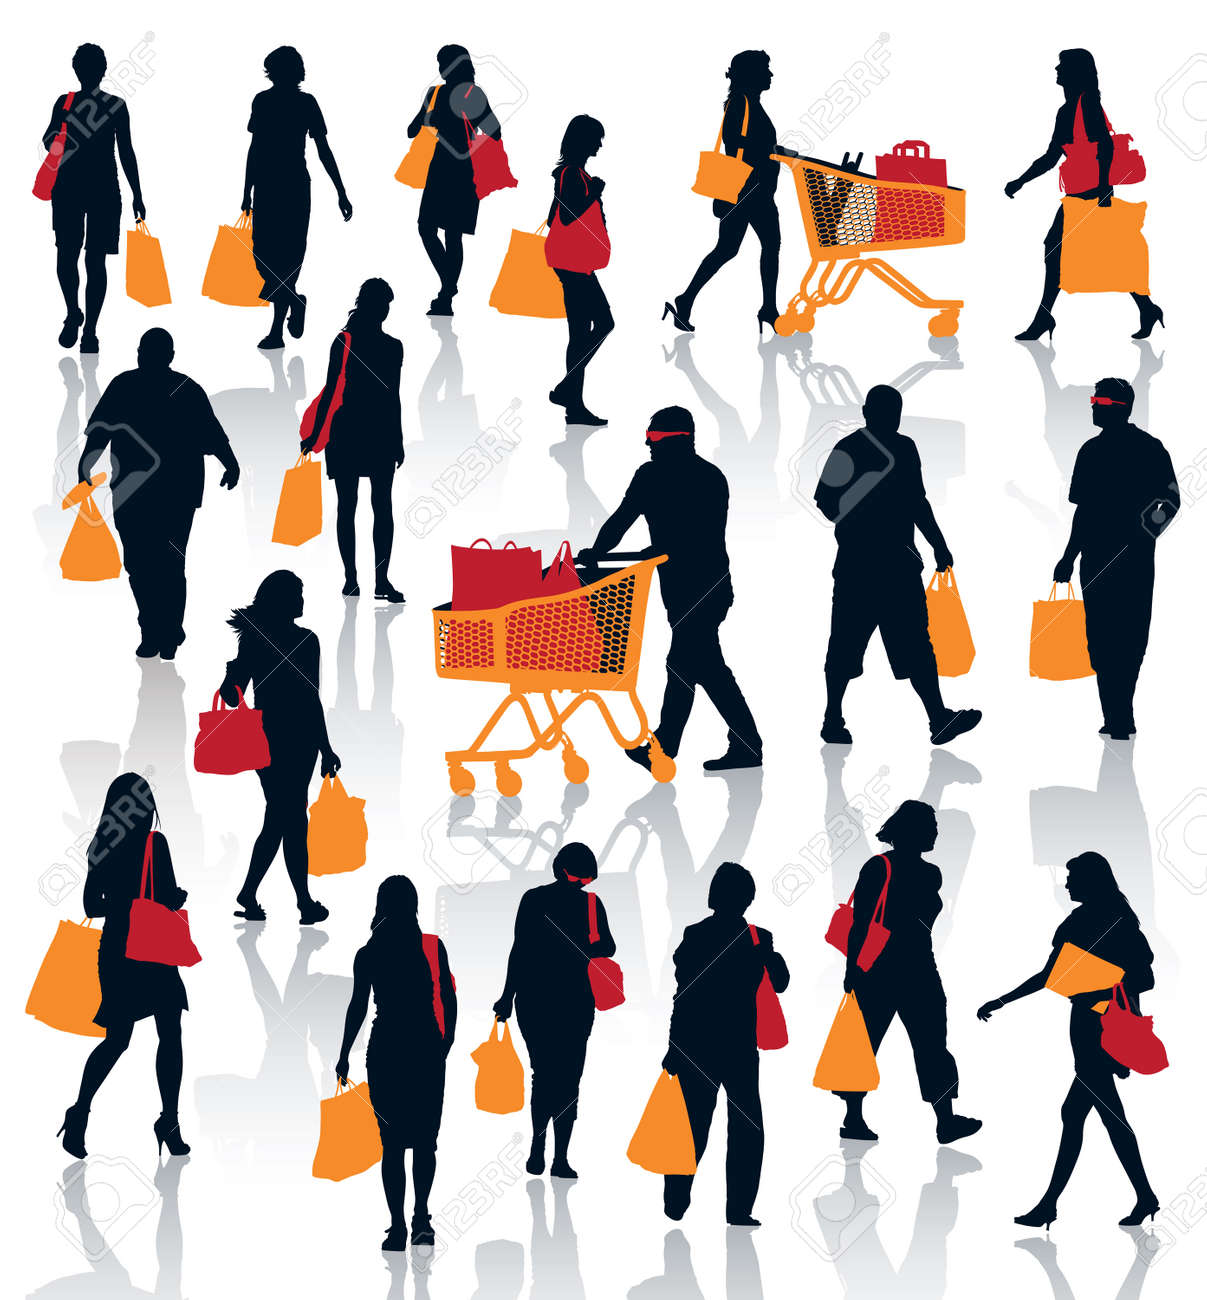 Set of people silhouettes. Happy shopping people holding bags with products. Standard-Bild - 23289463